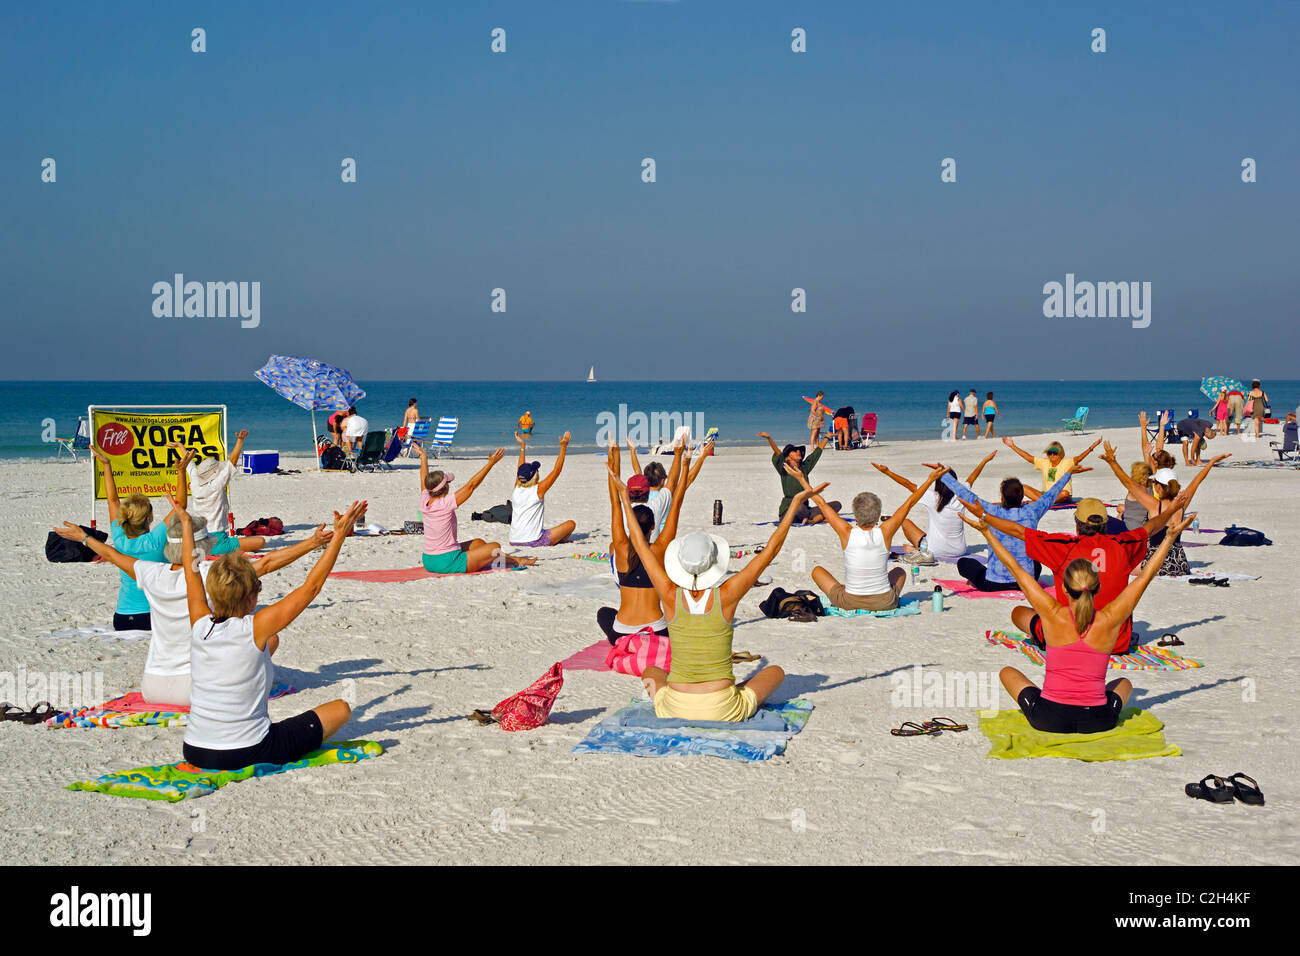 Yoga classes are held on the white sand beach of Siesta Key, a resort barrier island on the Gulf of Mexico at Sarasota, - Stock Image